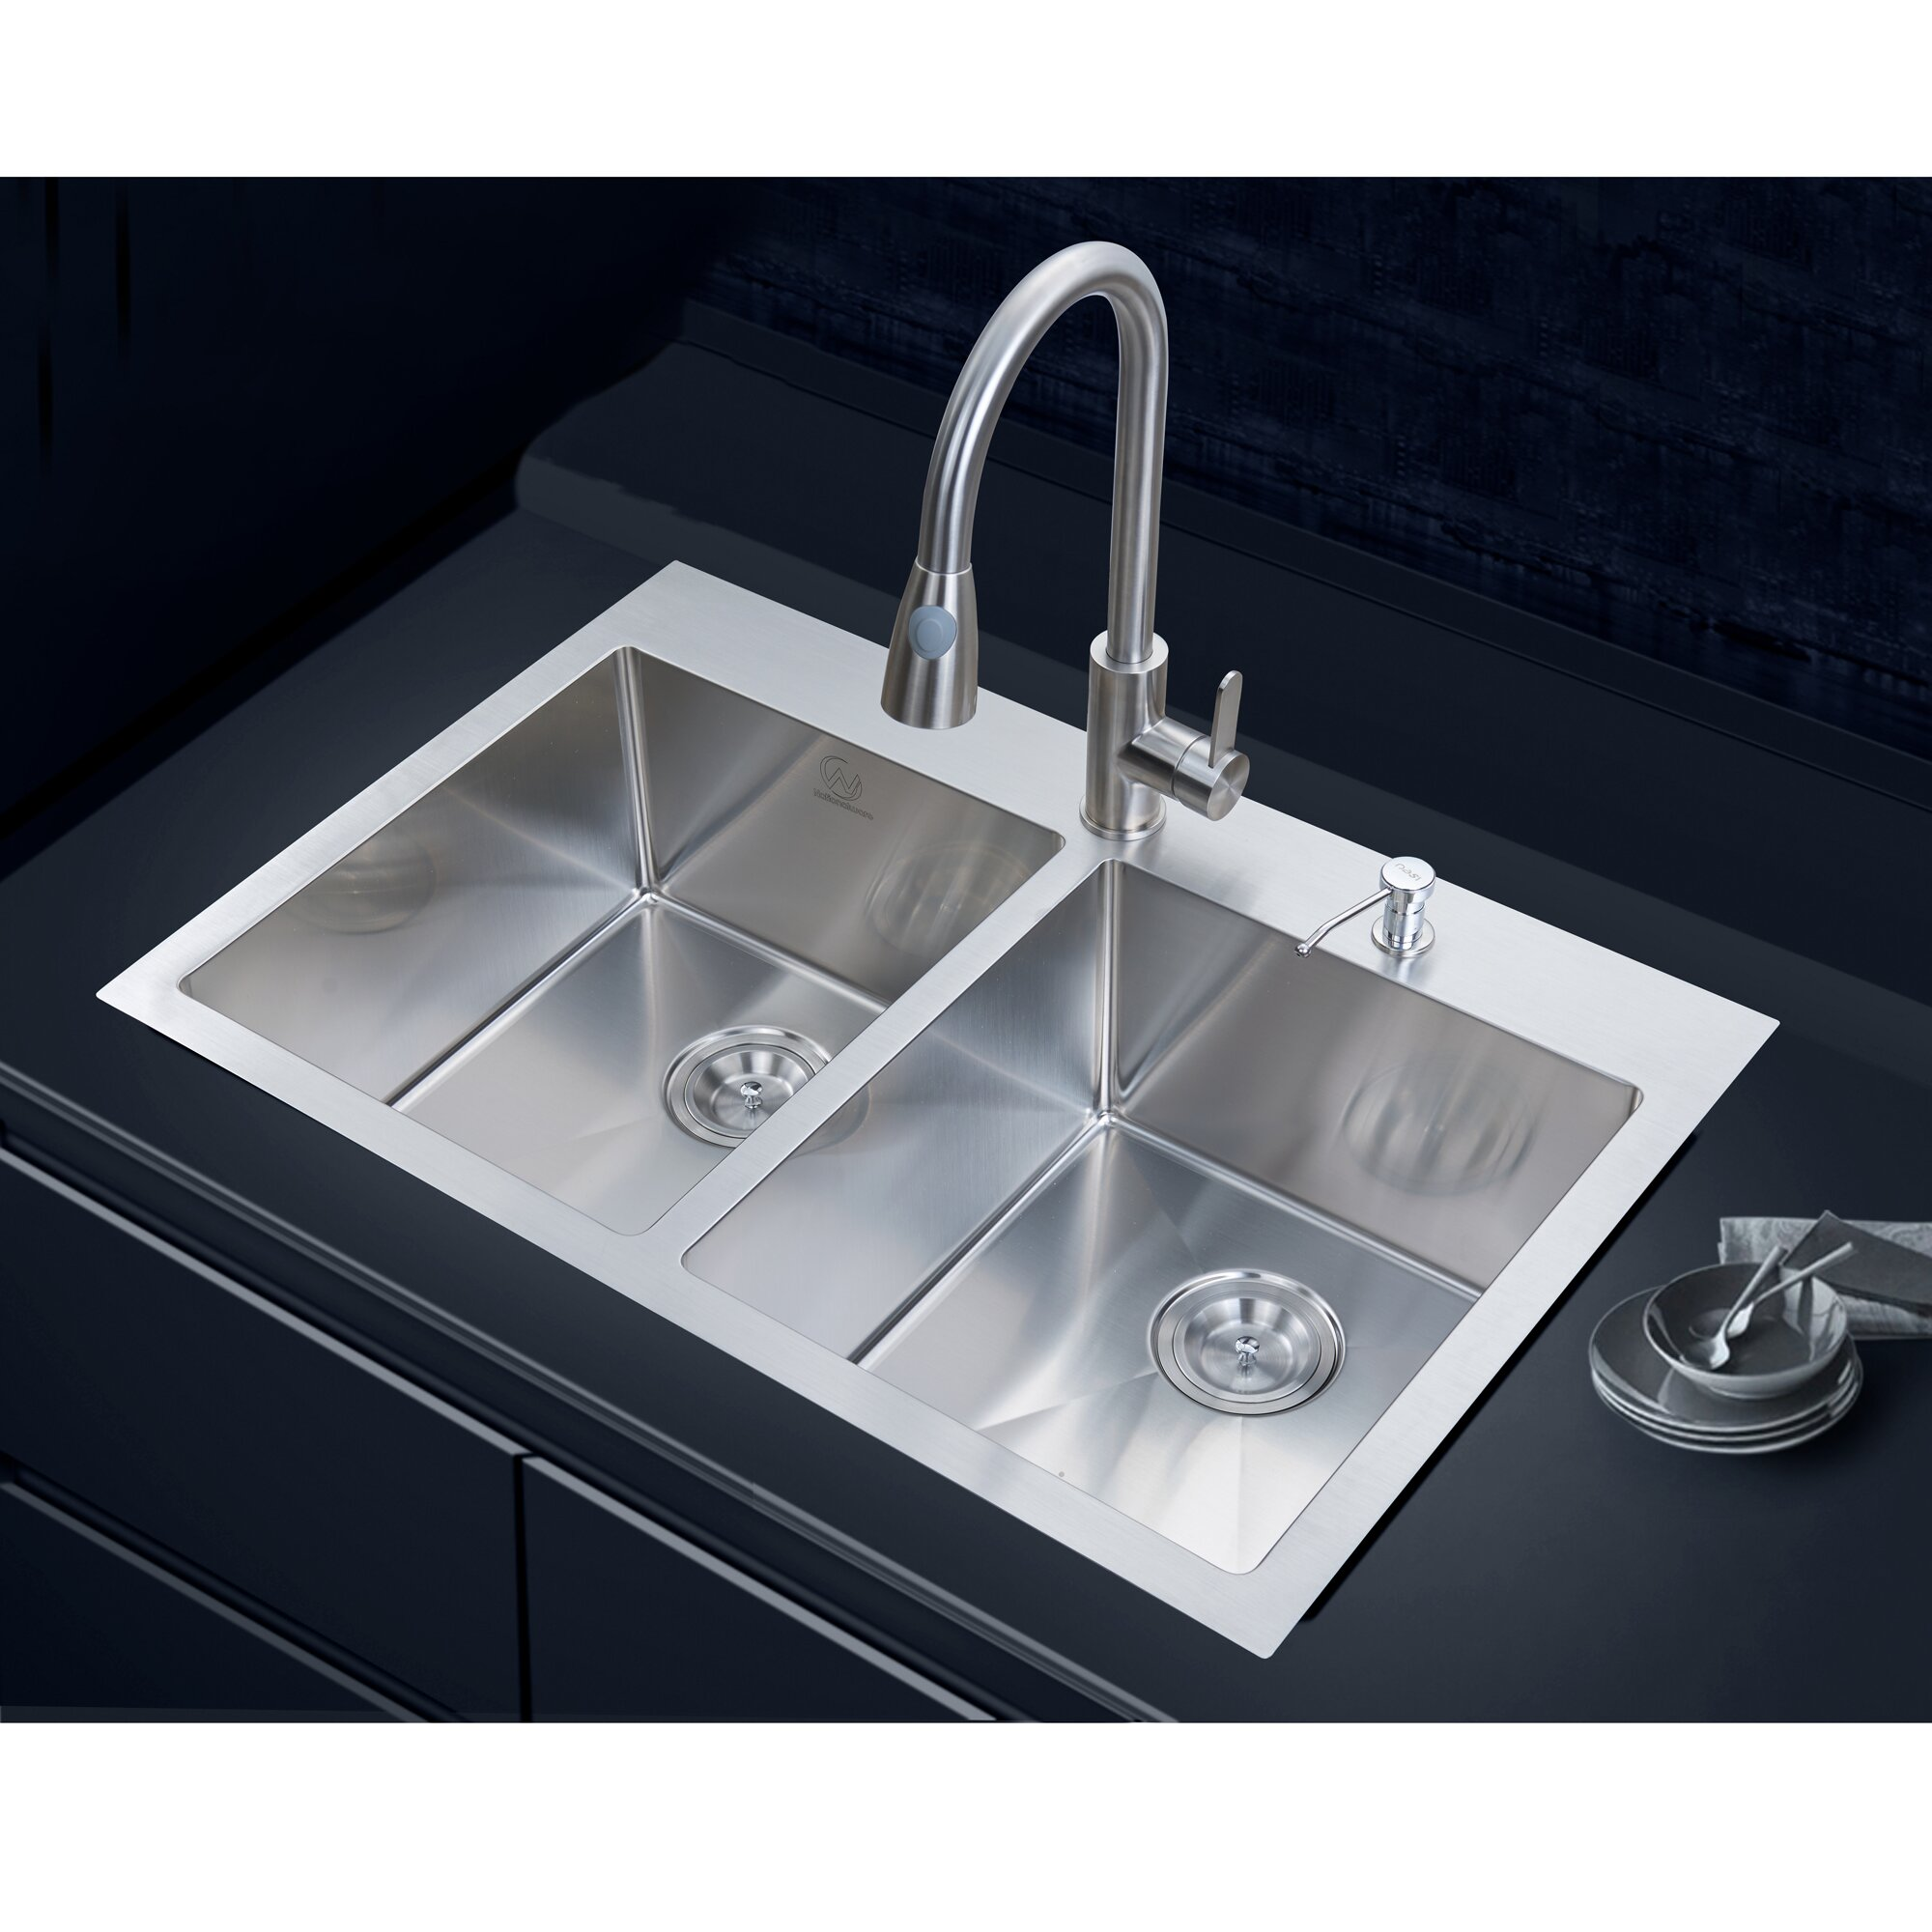 "Stufurhome 33"" x 22"" Overmount Kitchen Sink & Reviews"